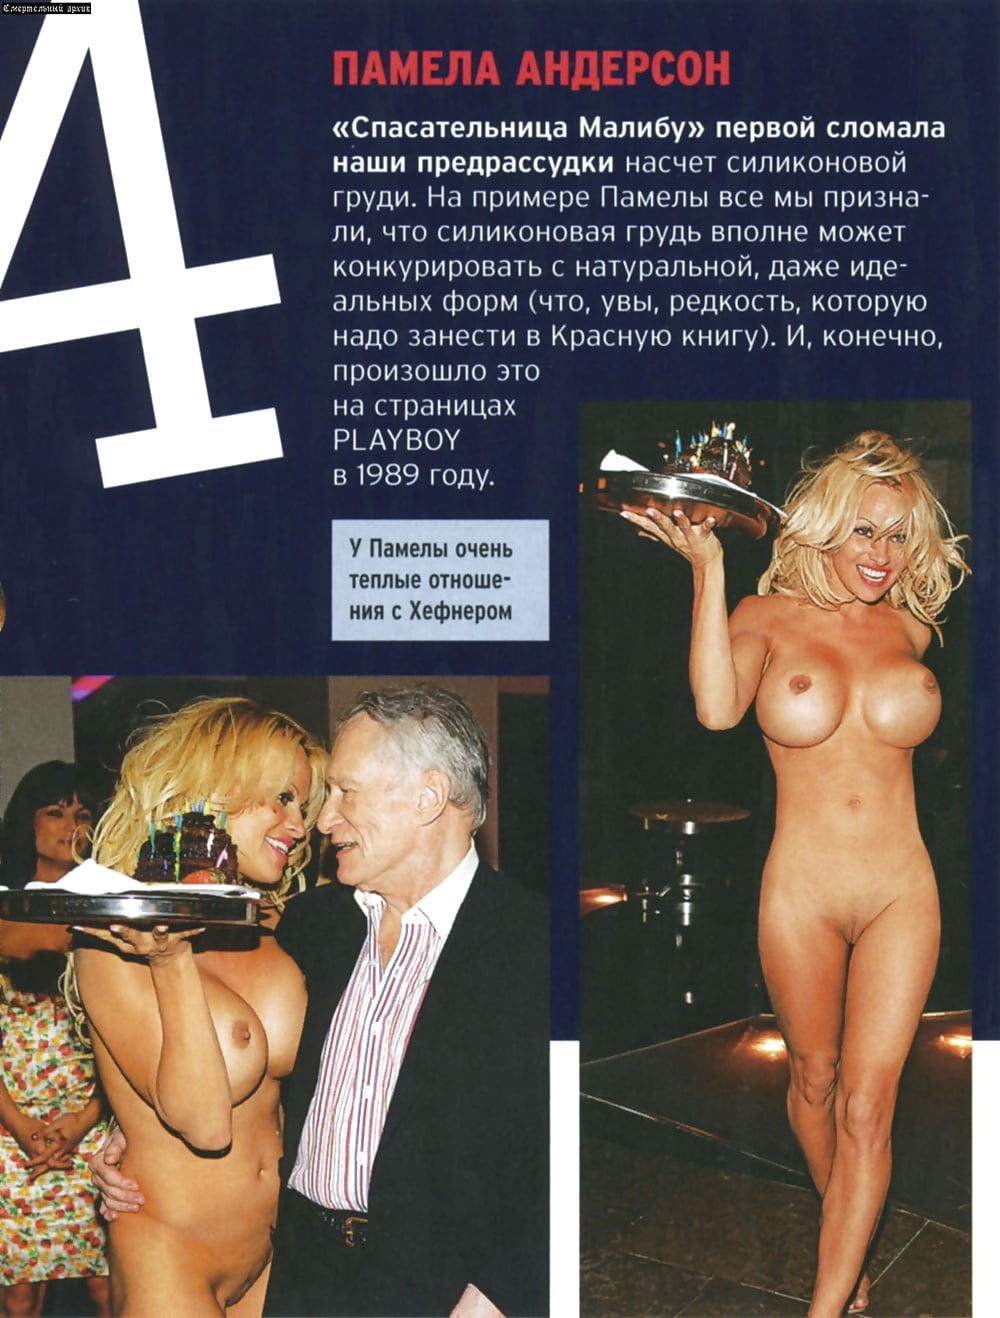 Playboy selects pamela anderson to be final nude centerfold